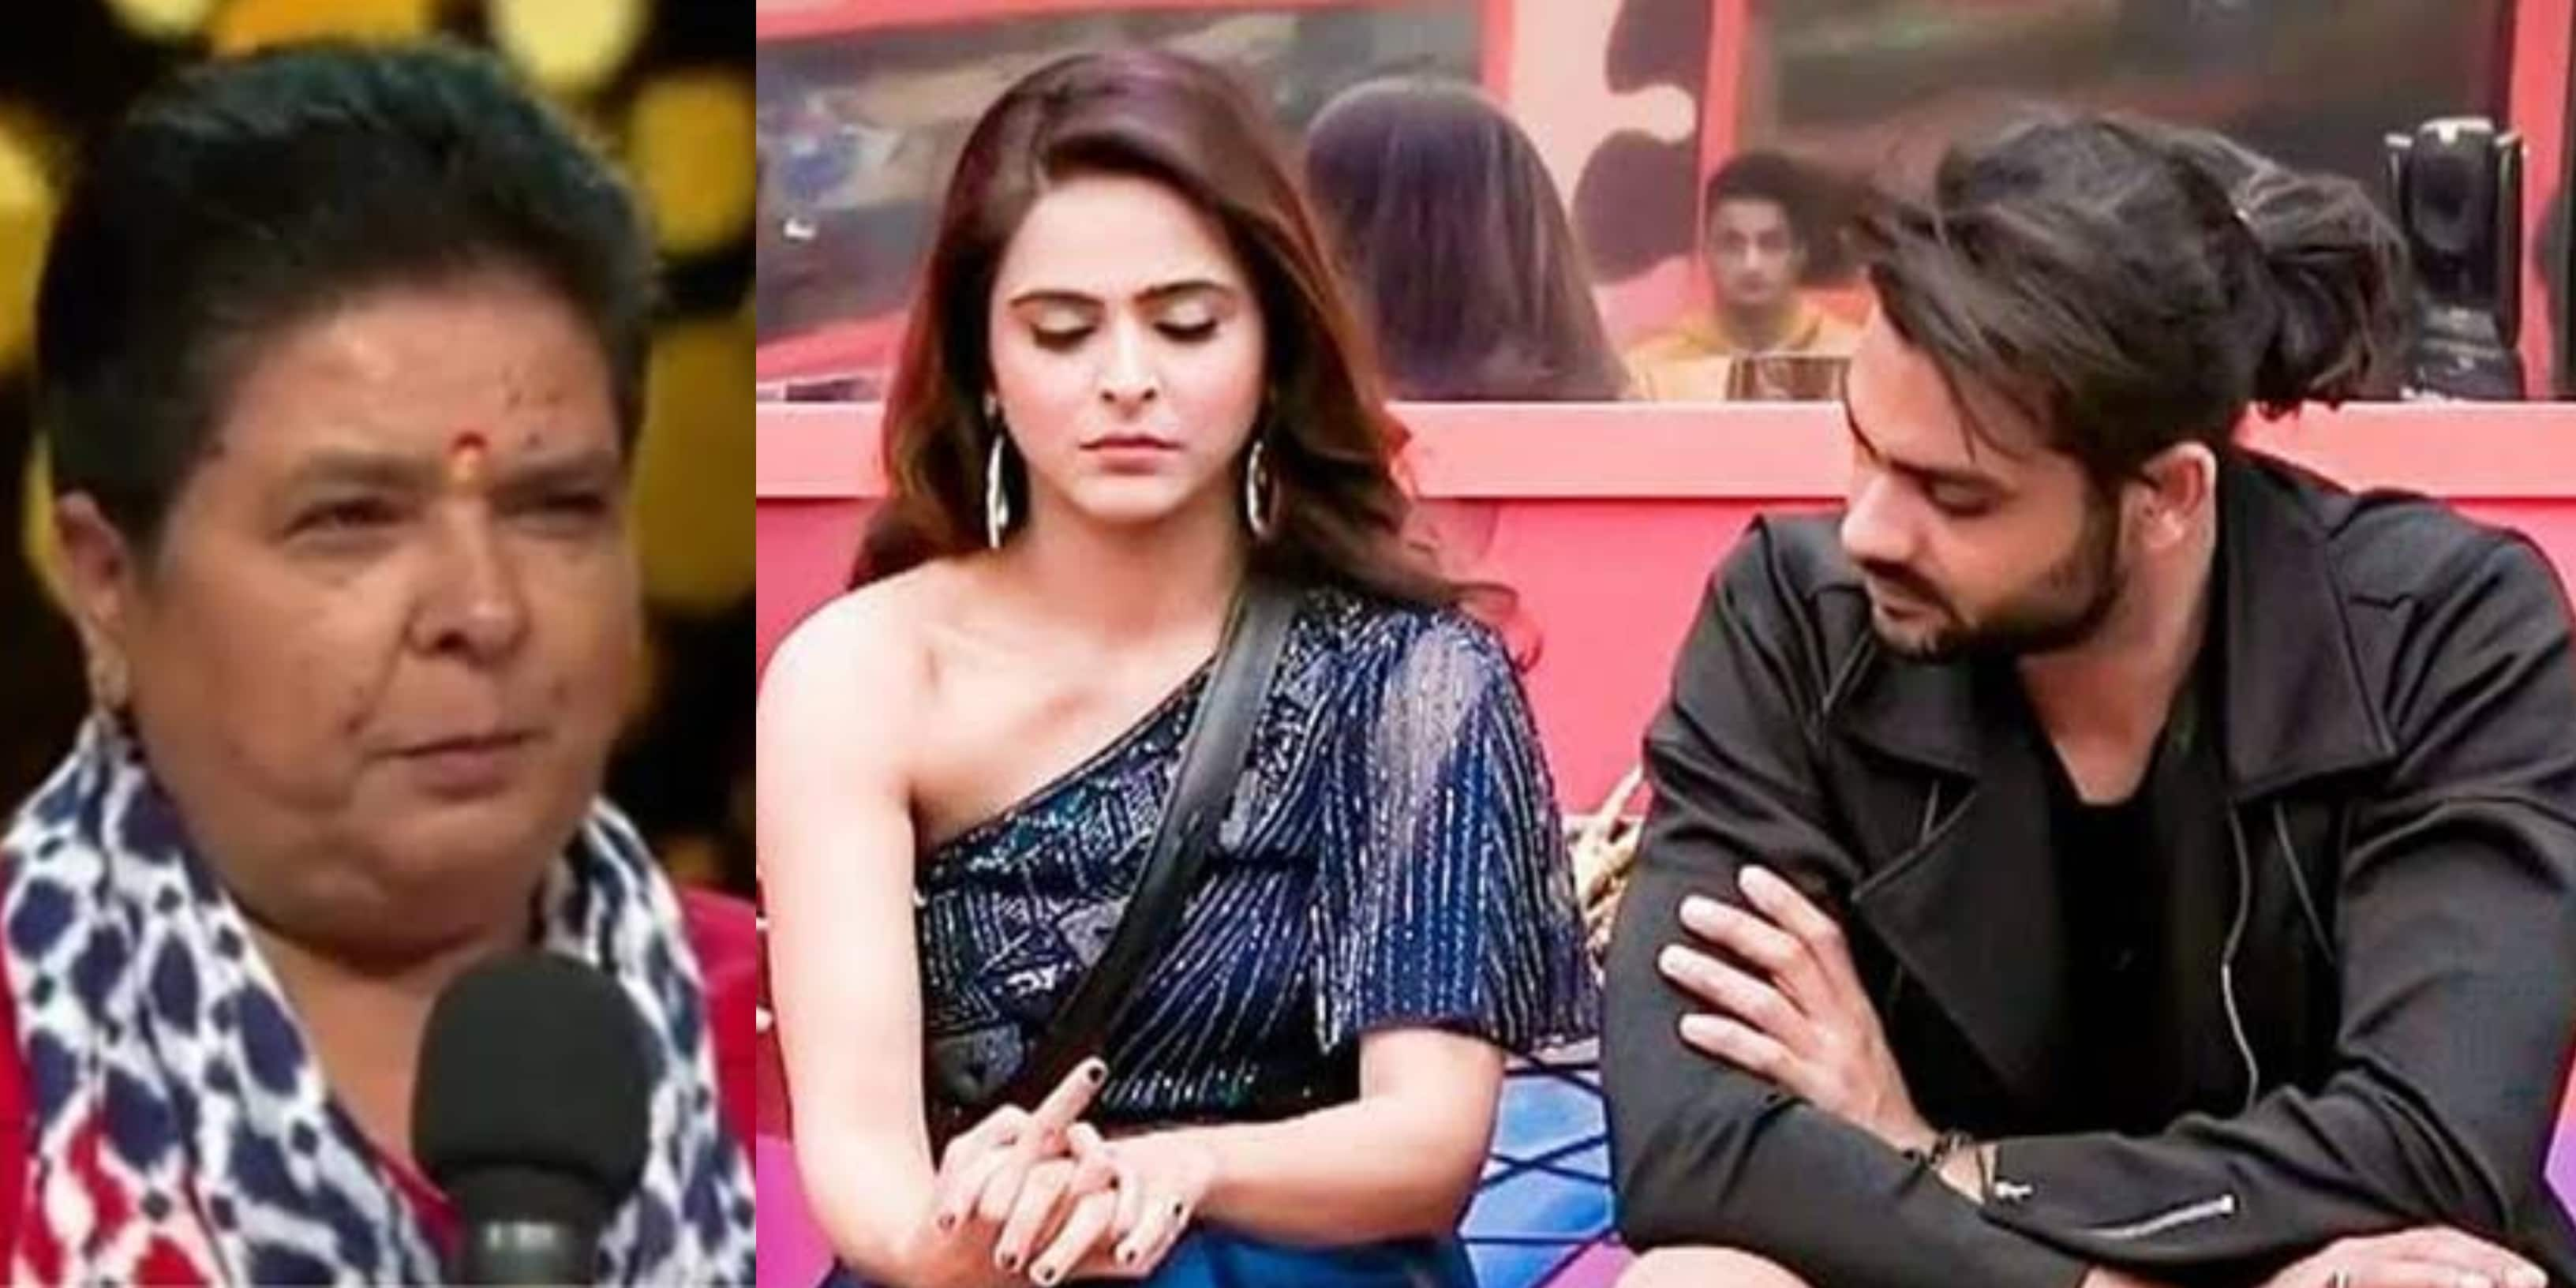 Bigg Boss 13: Madhurima Tuli's Mother Reacts To Vishal Aditya Singh's Eviction; Says 'I Can't Hate Him'